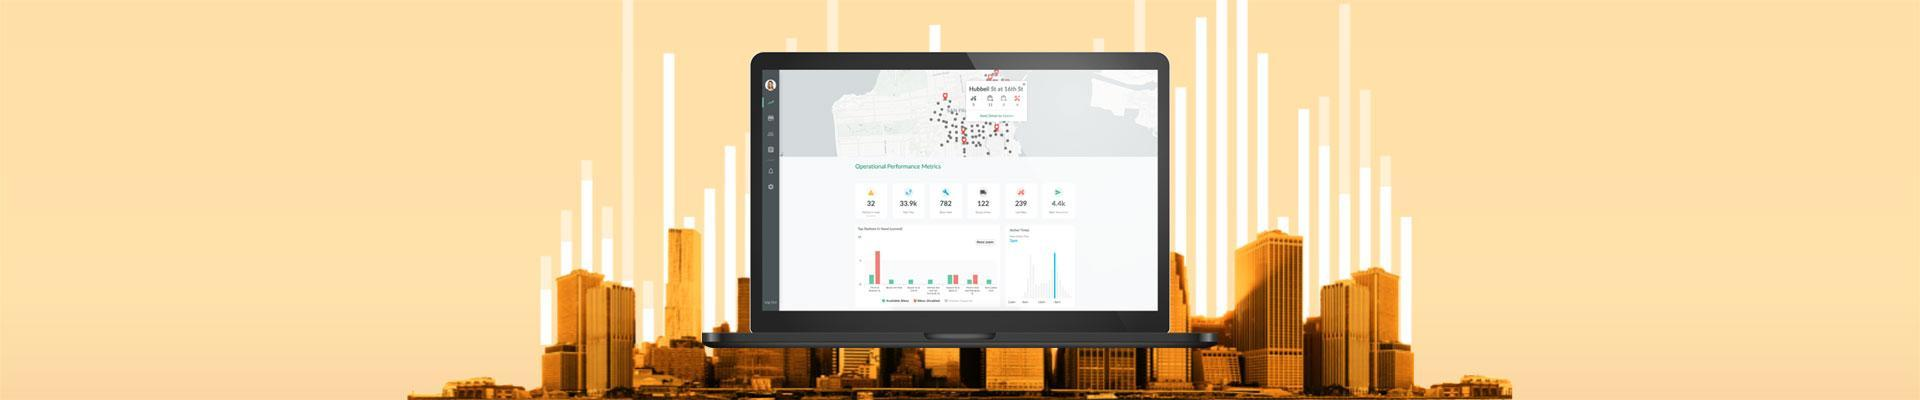 Embedded Analytics Interactive Demo App